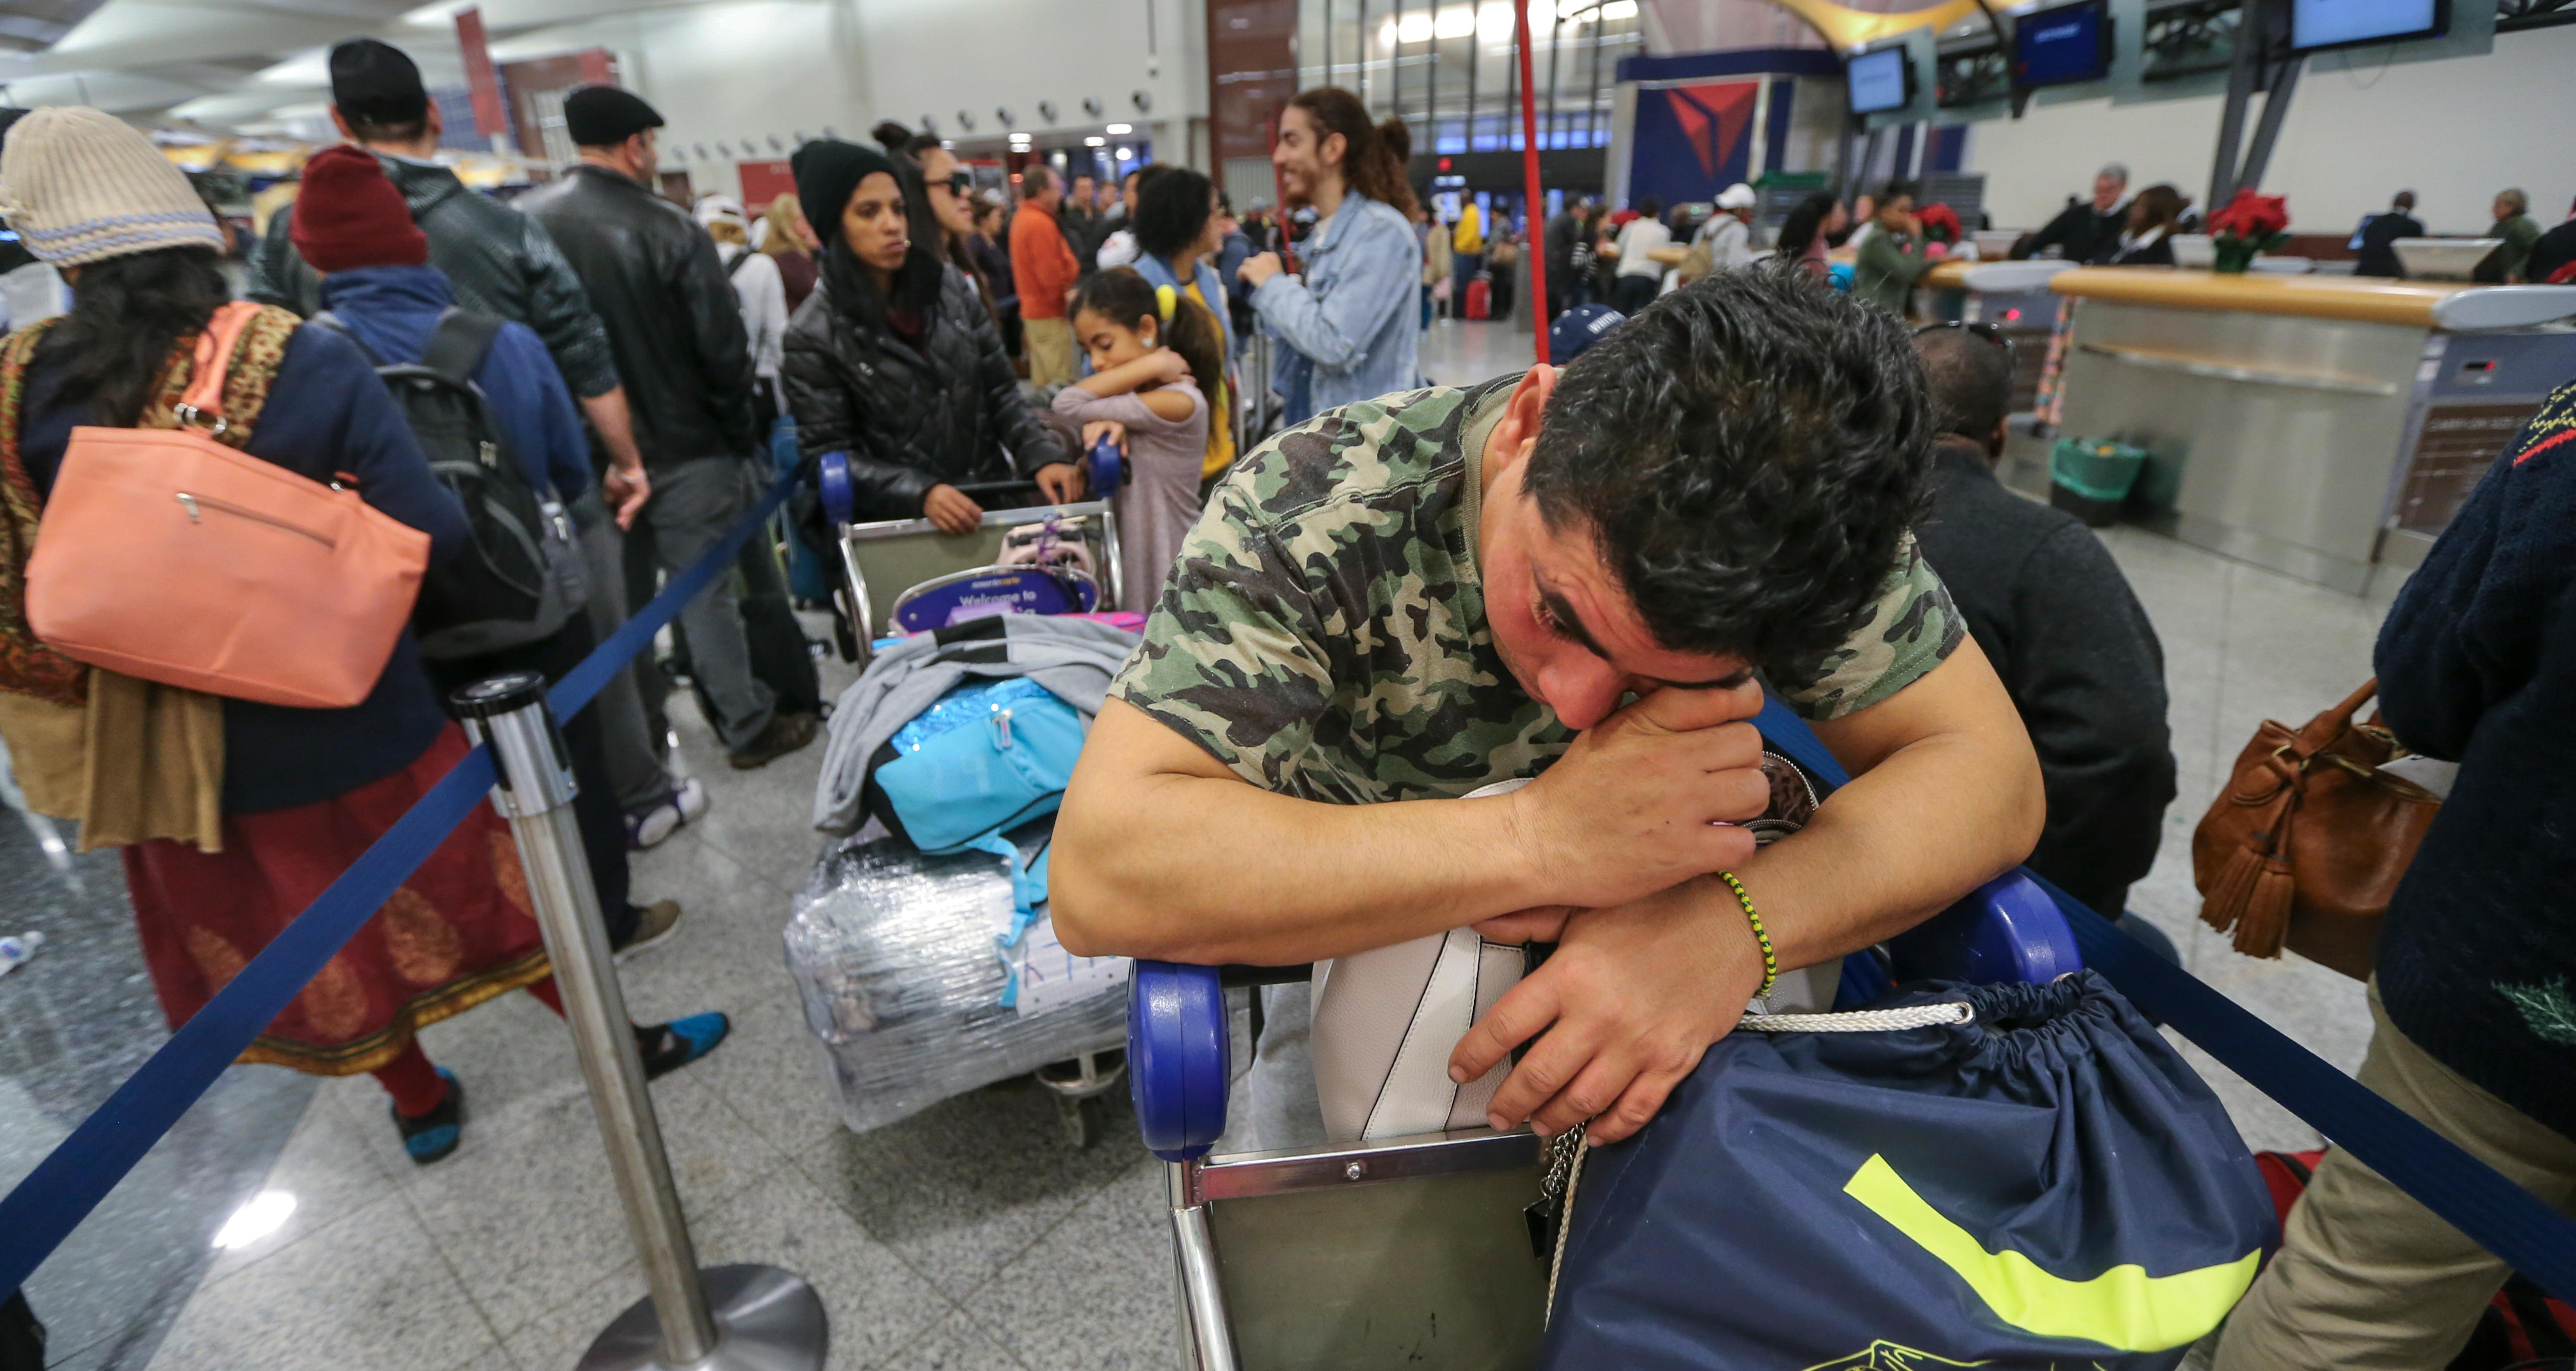 Alexis Canete rests on his luggage as he waits in the Delta ticket line to get back home to Cuba from his visit to Tennessee on Monday Dec. 18, 2017 at Hartsfield-Jackson International Airport in Atlanta, the day after a massive power outage brought operations to halt. Power was restored at the world's busiest airport after a massive outage Sunday afternoon that left planes and passengers stranded for hours, forced airlines to cancel more than 1,100 flights and created a logistical nightmare during the already-busy holiday travel season.  (John Spink/Atlanta Journal-Constitution via AP)